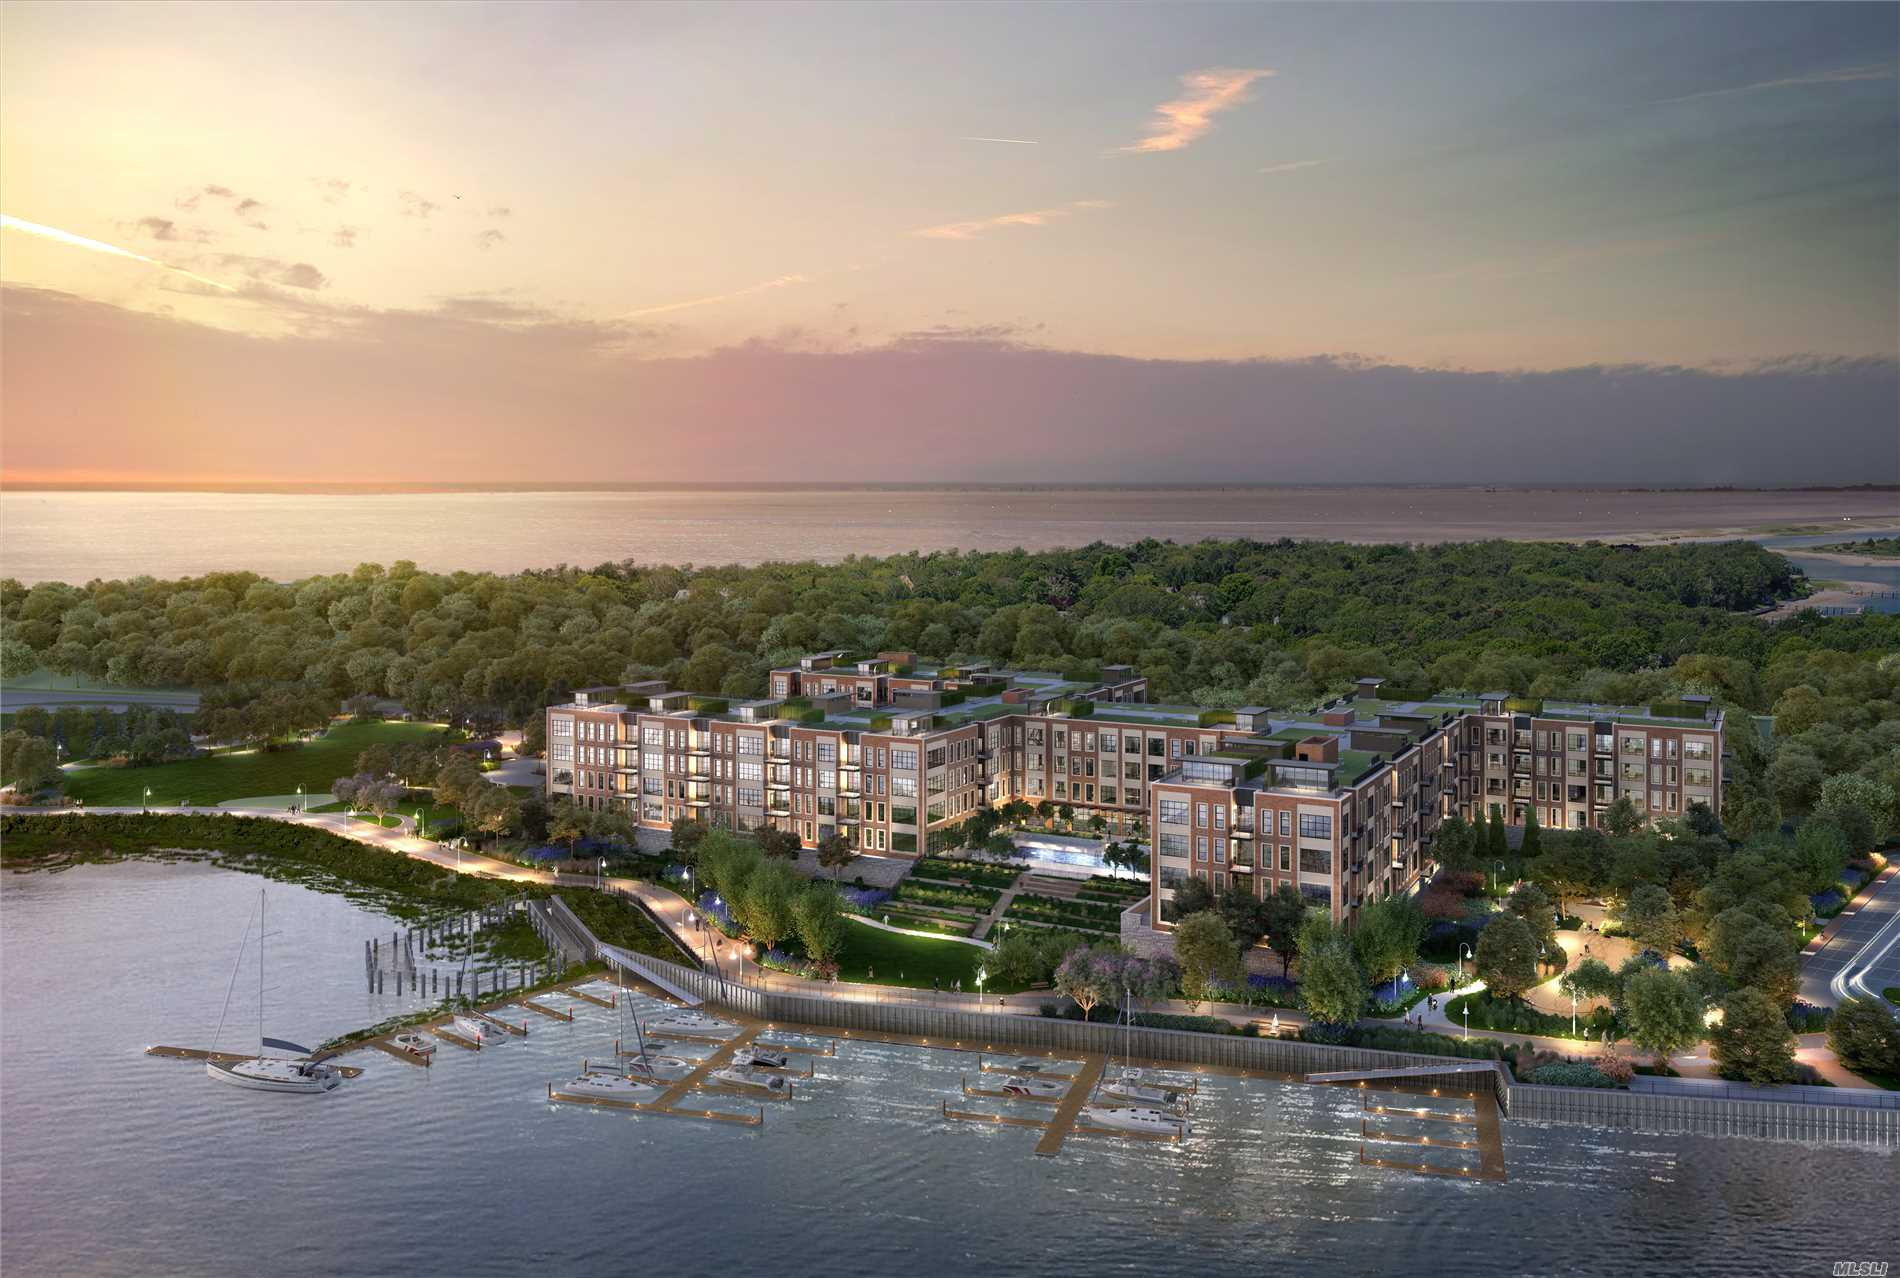 Property for sale at 100 Garvies Point Ro Road # 1117, Glen Cove NY 11542, Glen Cove,  New York 11542